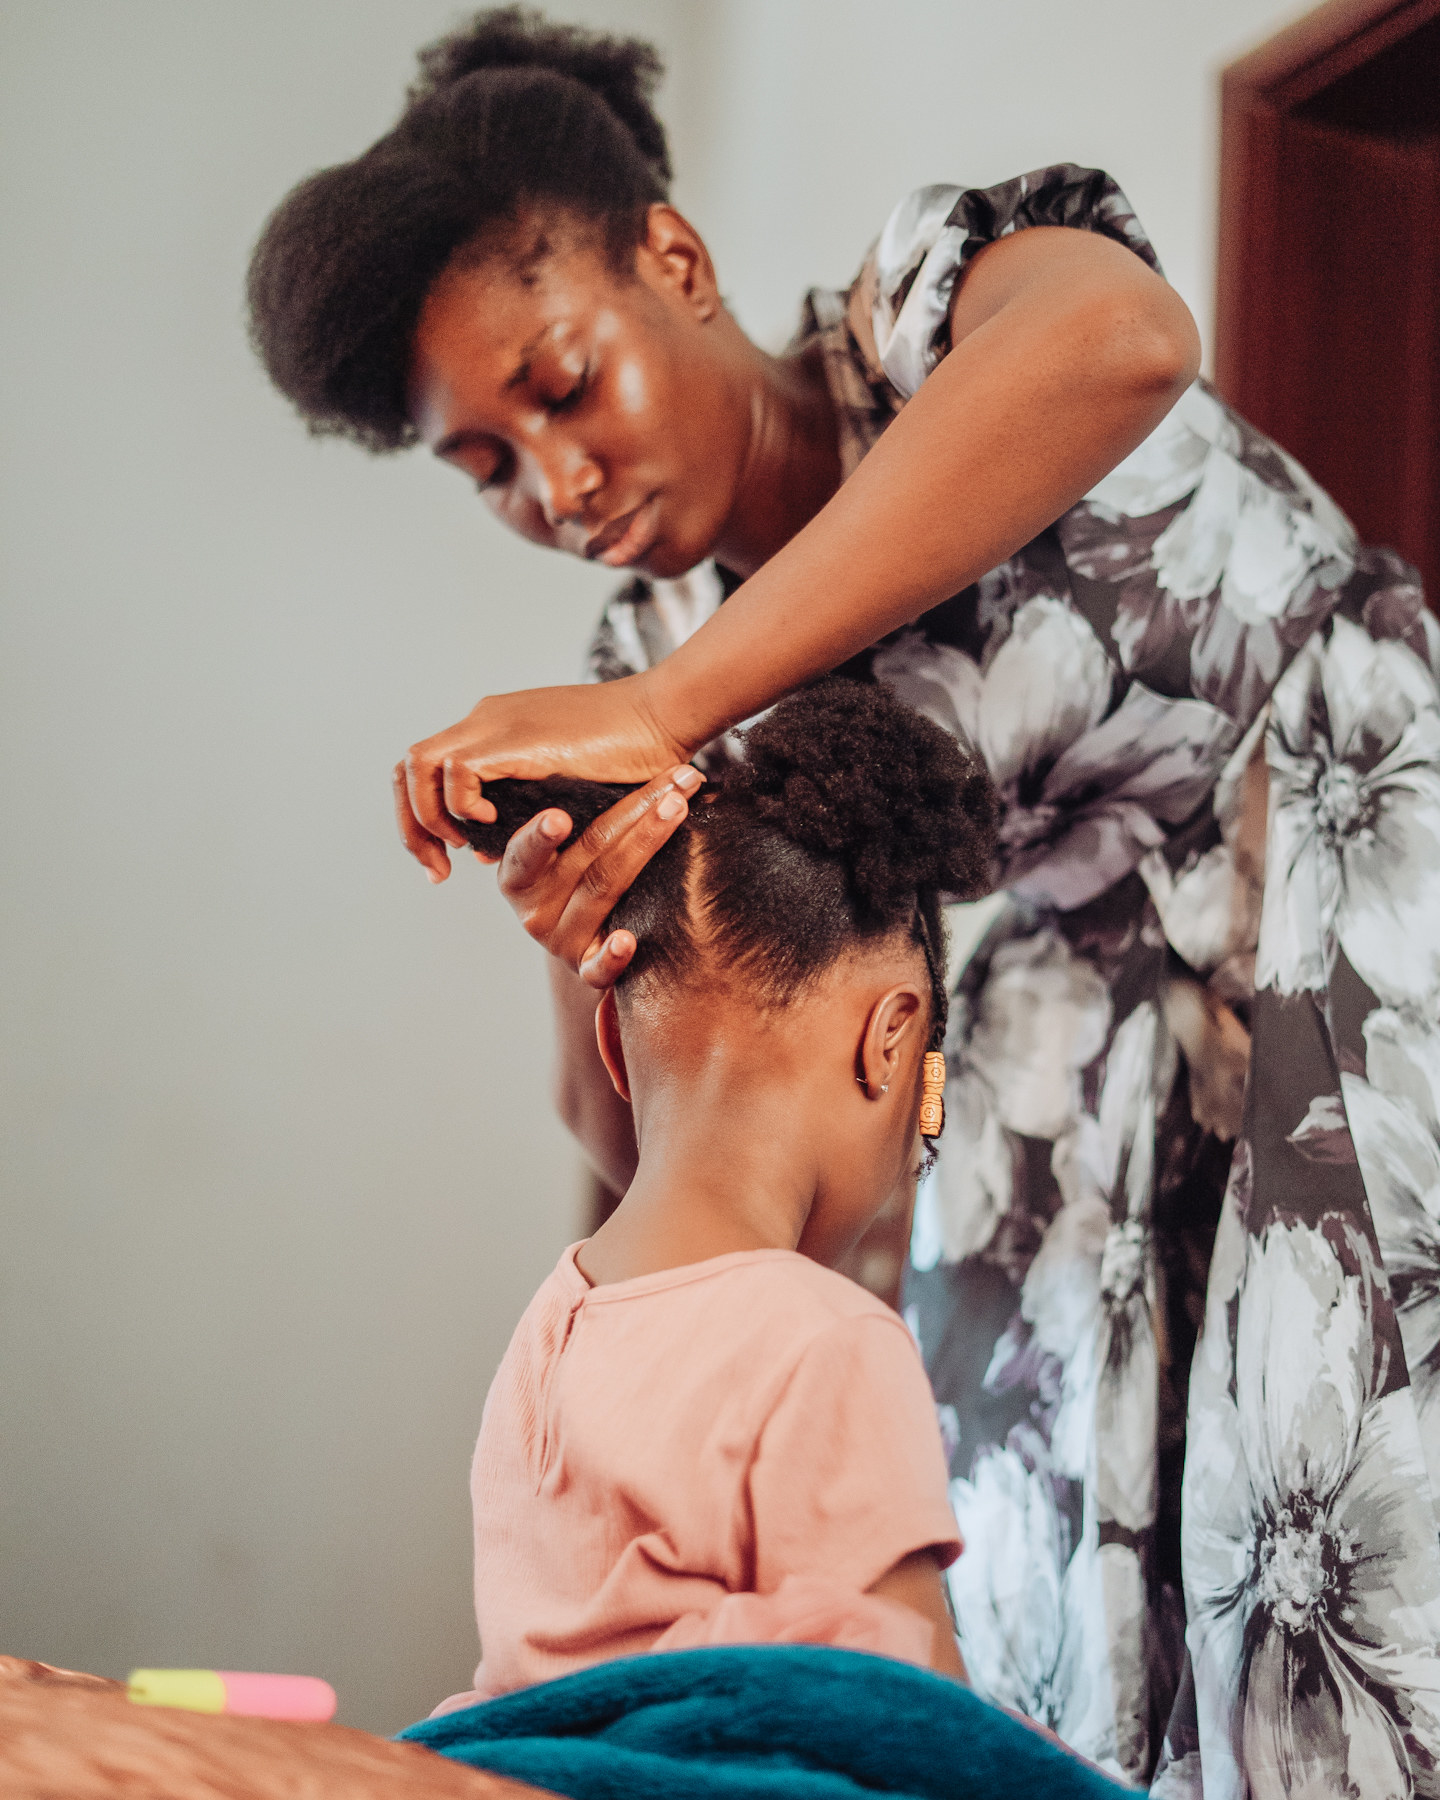 A woman leans over and ties a little girl's hair in a pigtail